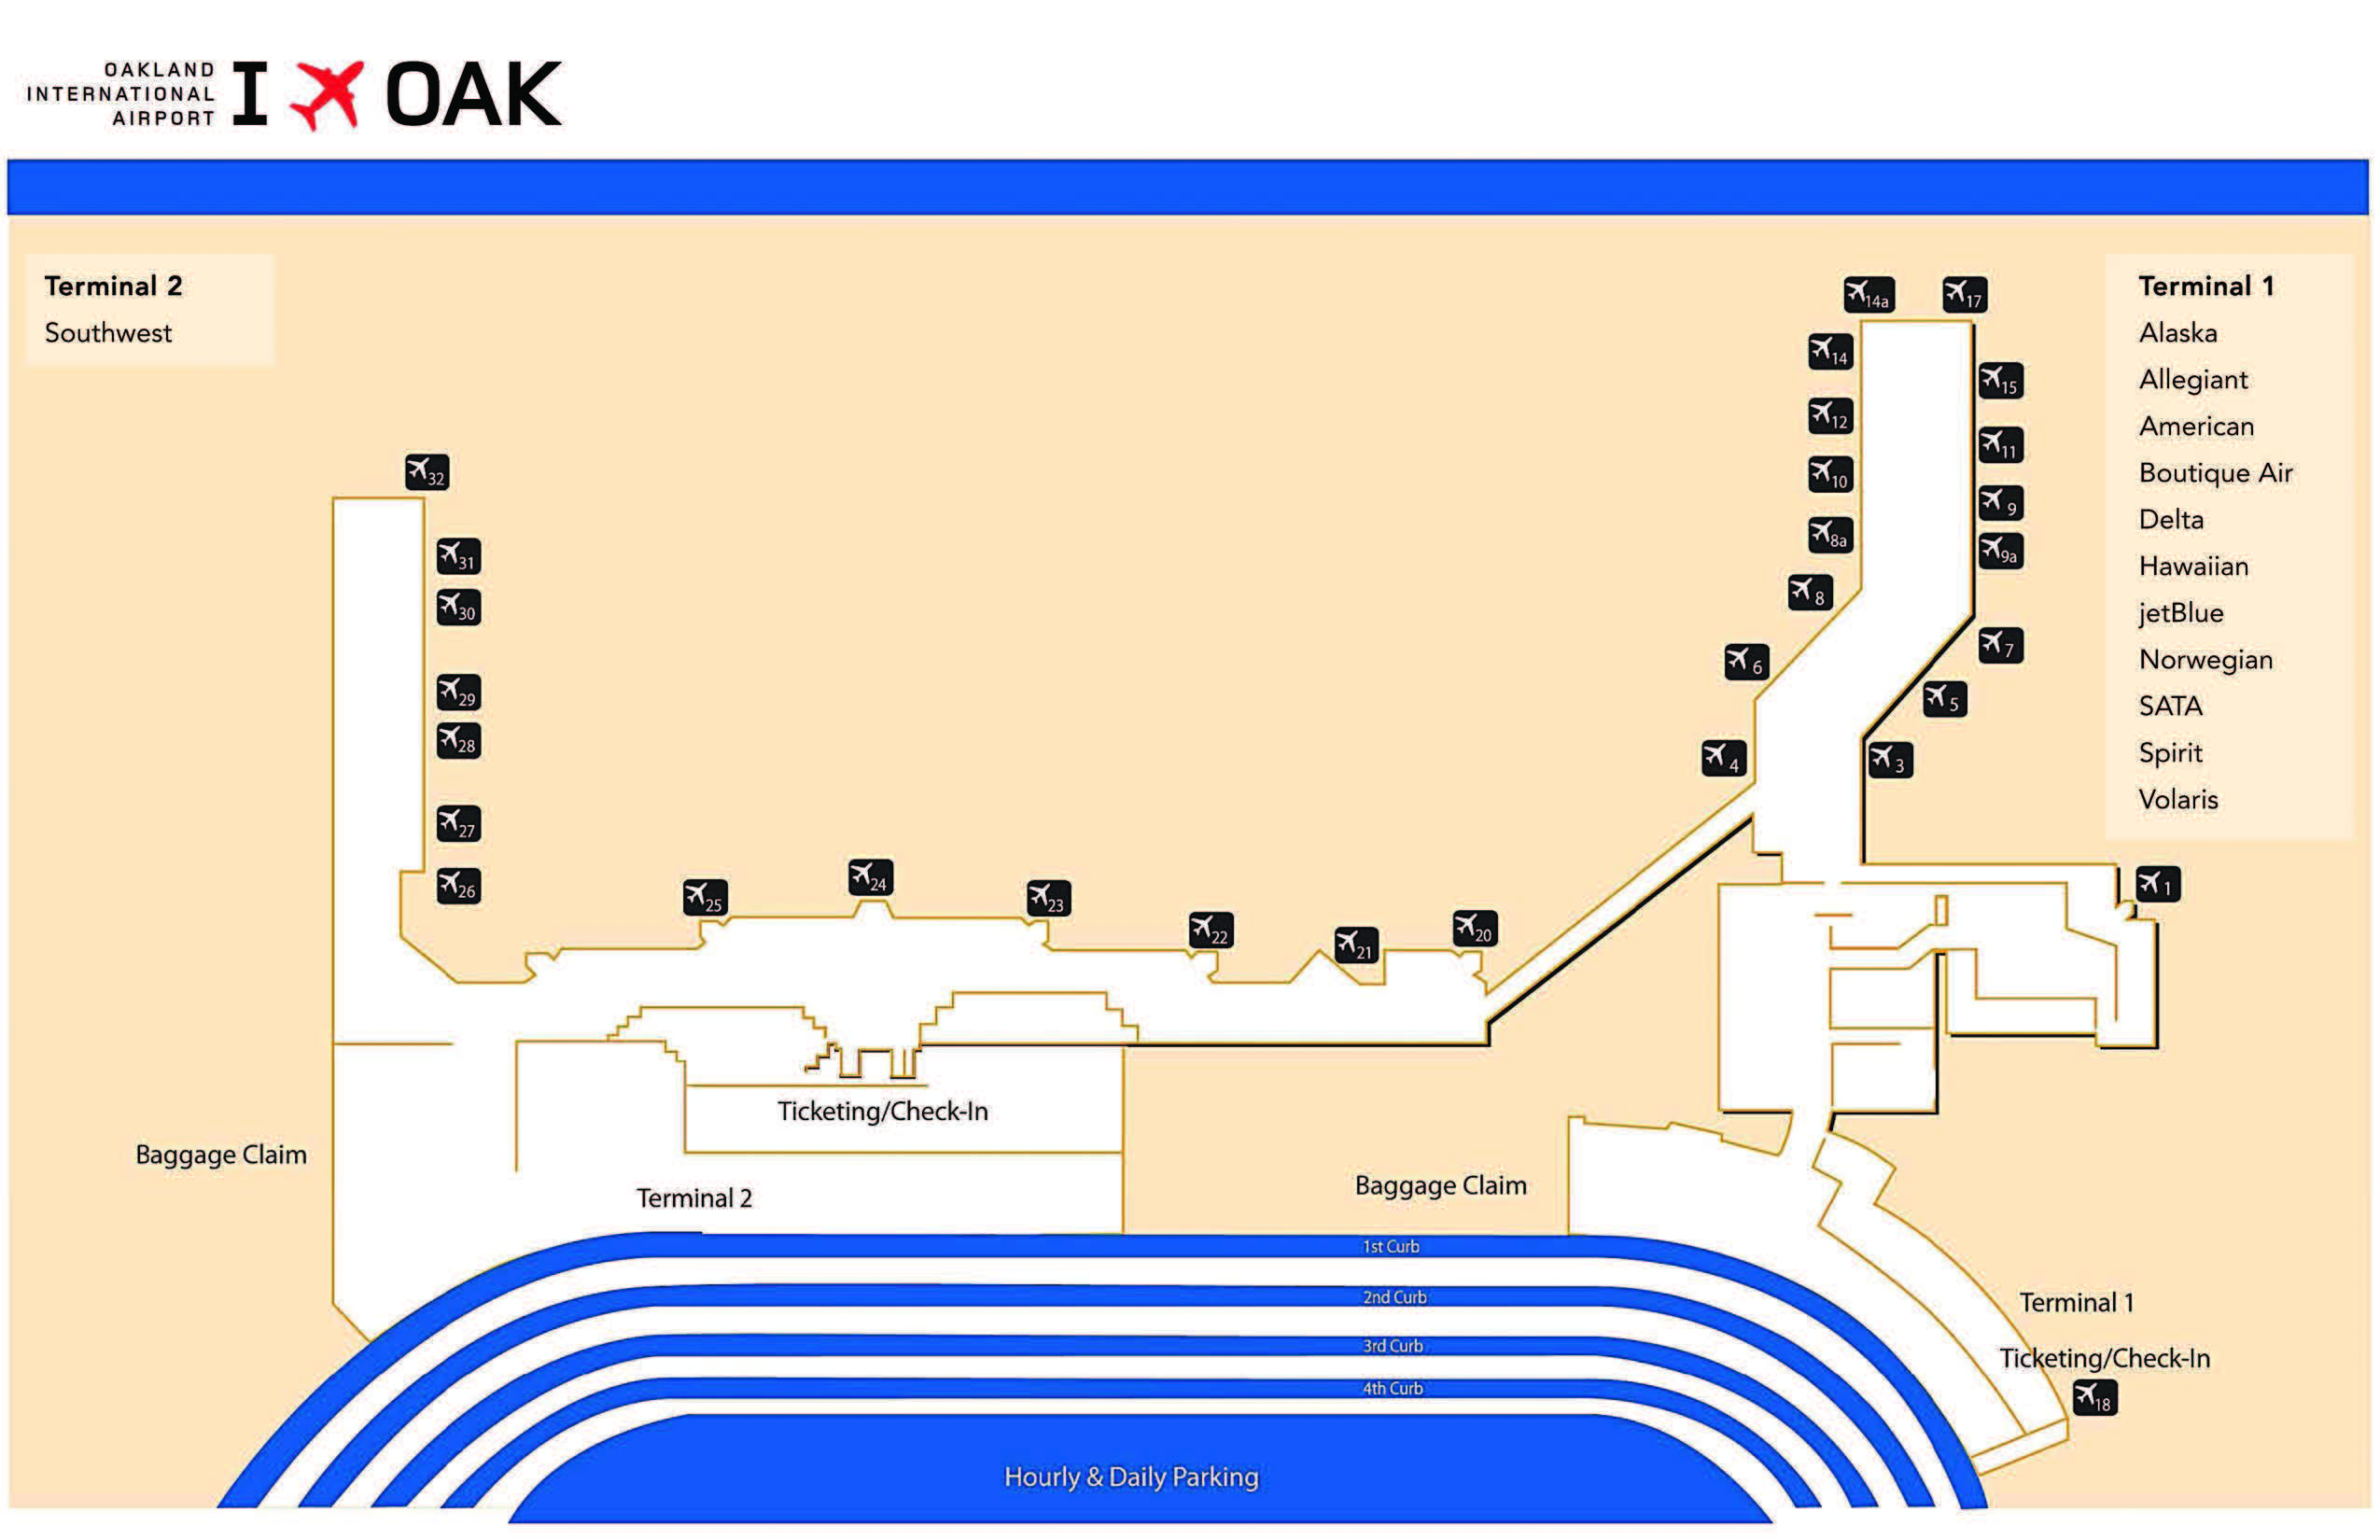 Airport Terminal Map Oakland International Airport